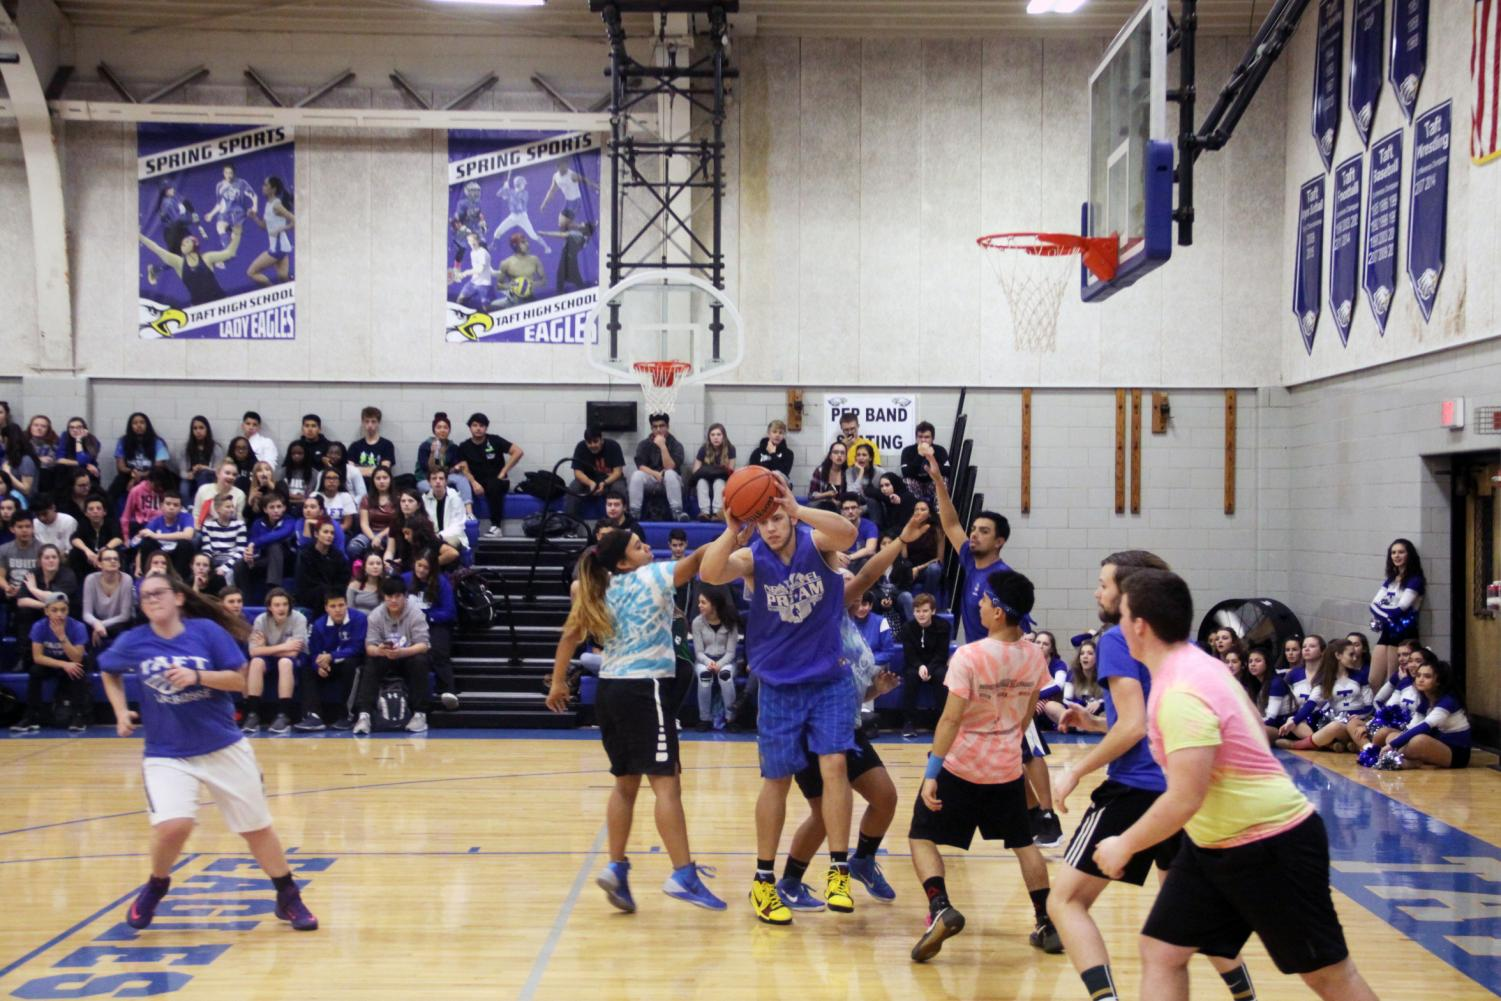 The Taft student Eagles take on the faculty during a Pink Out basketball game.